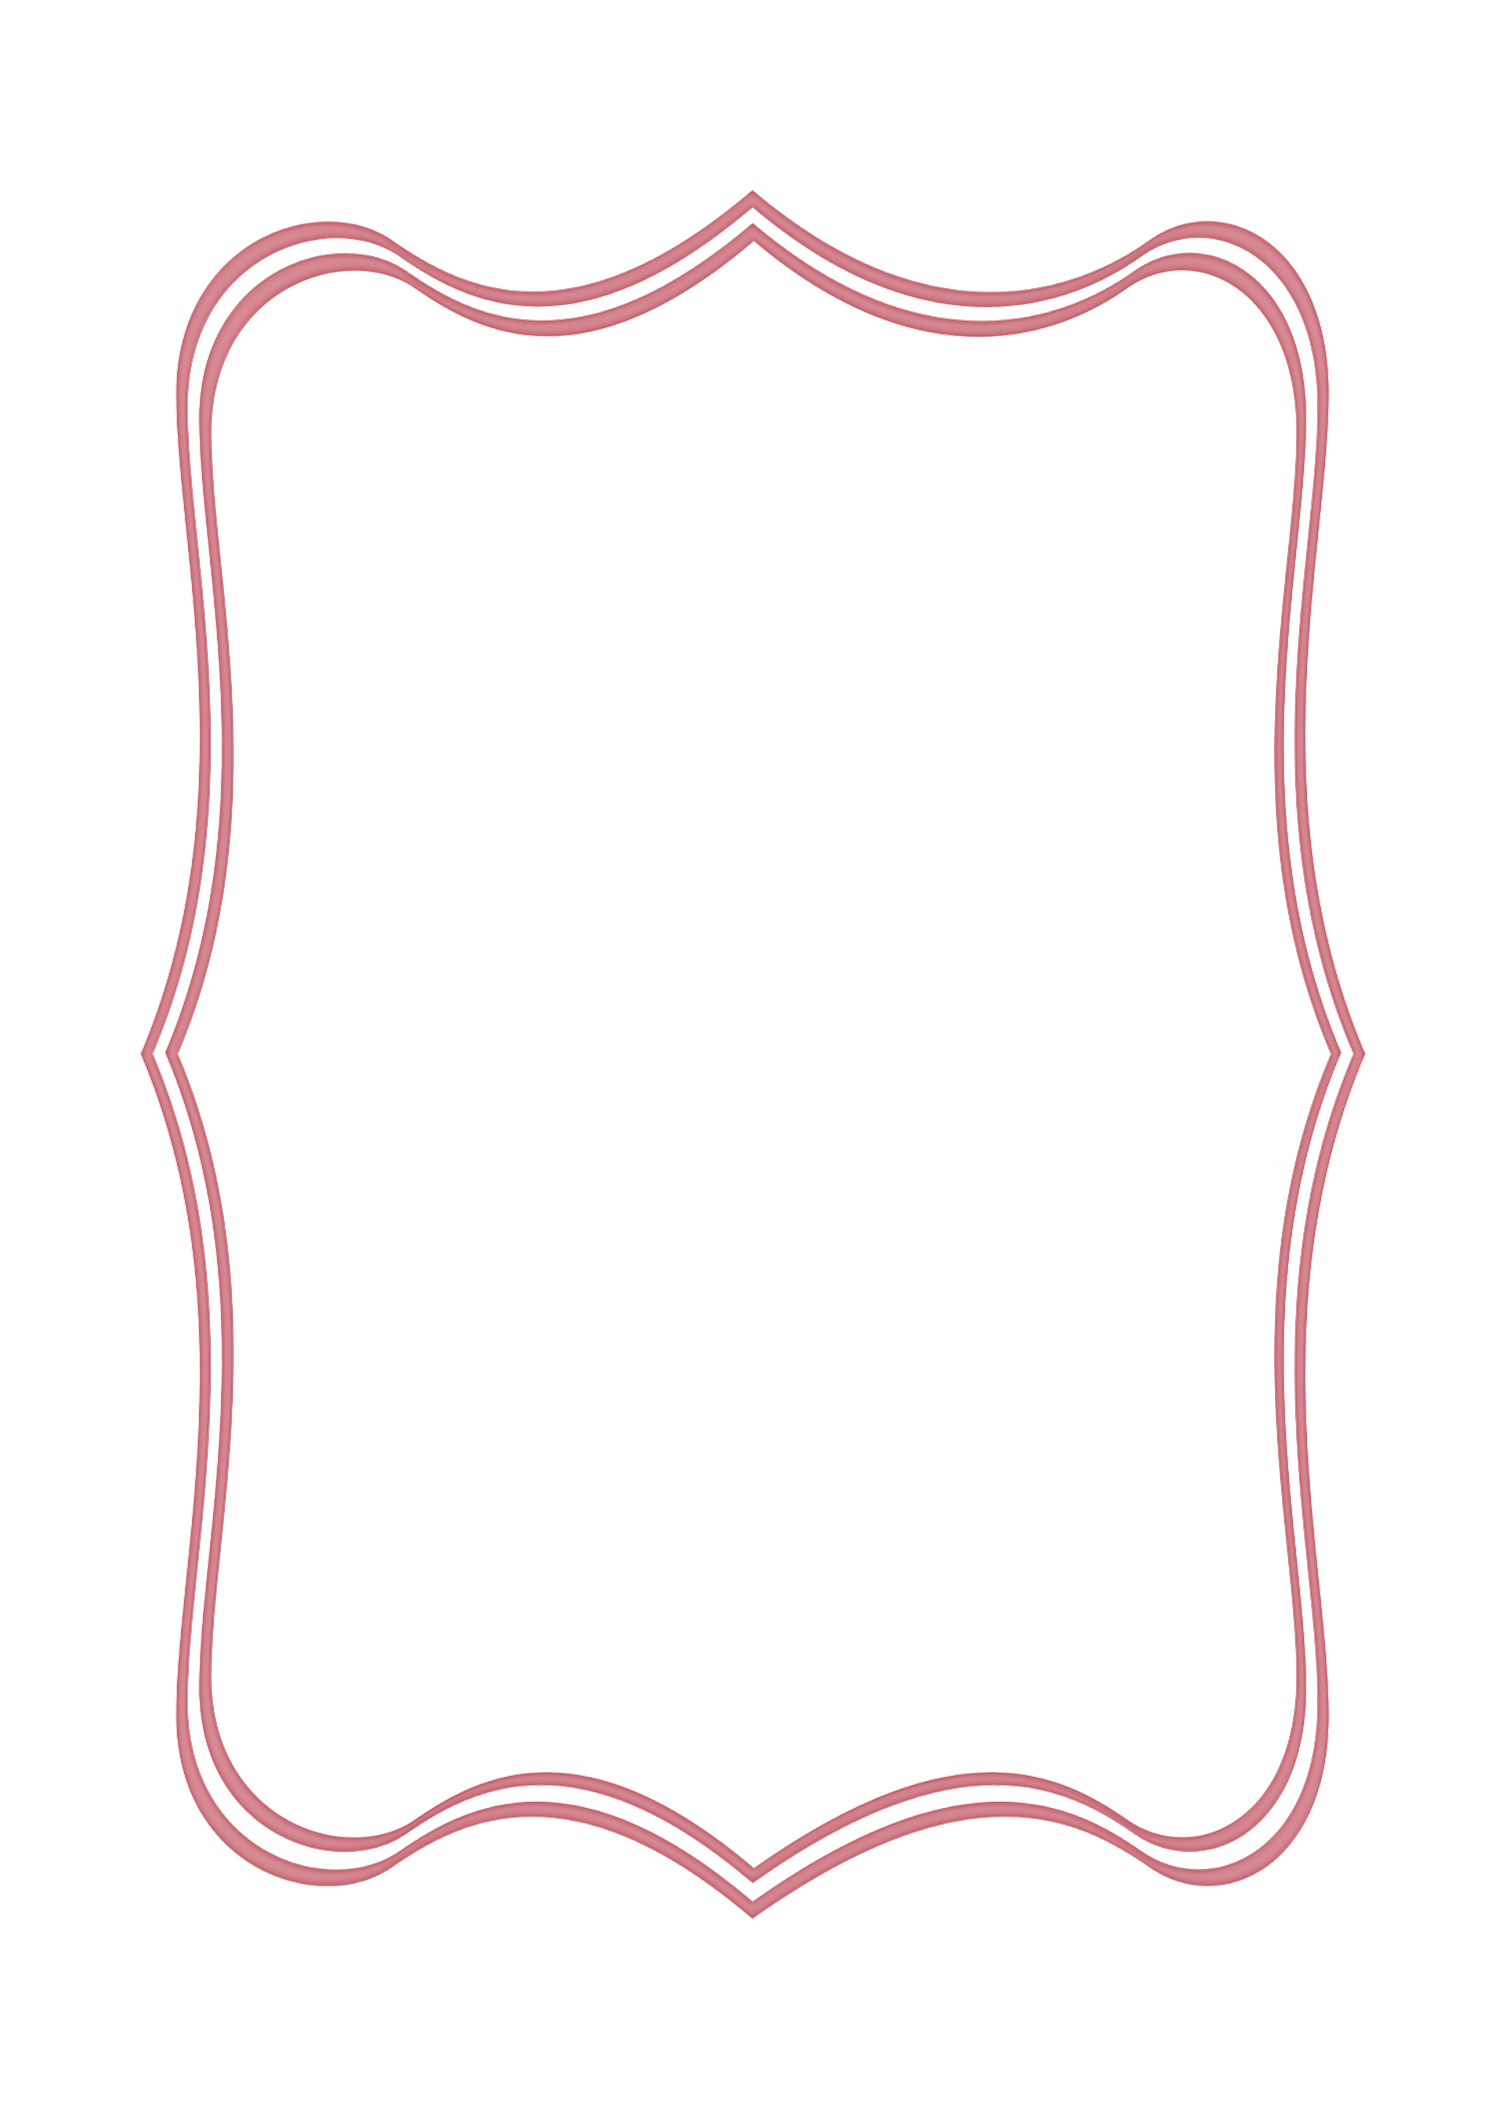 Chalk Transparent Border: Free Images At Clker.com - Vector Clip Art